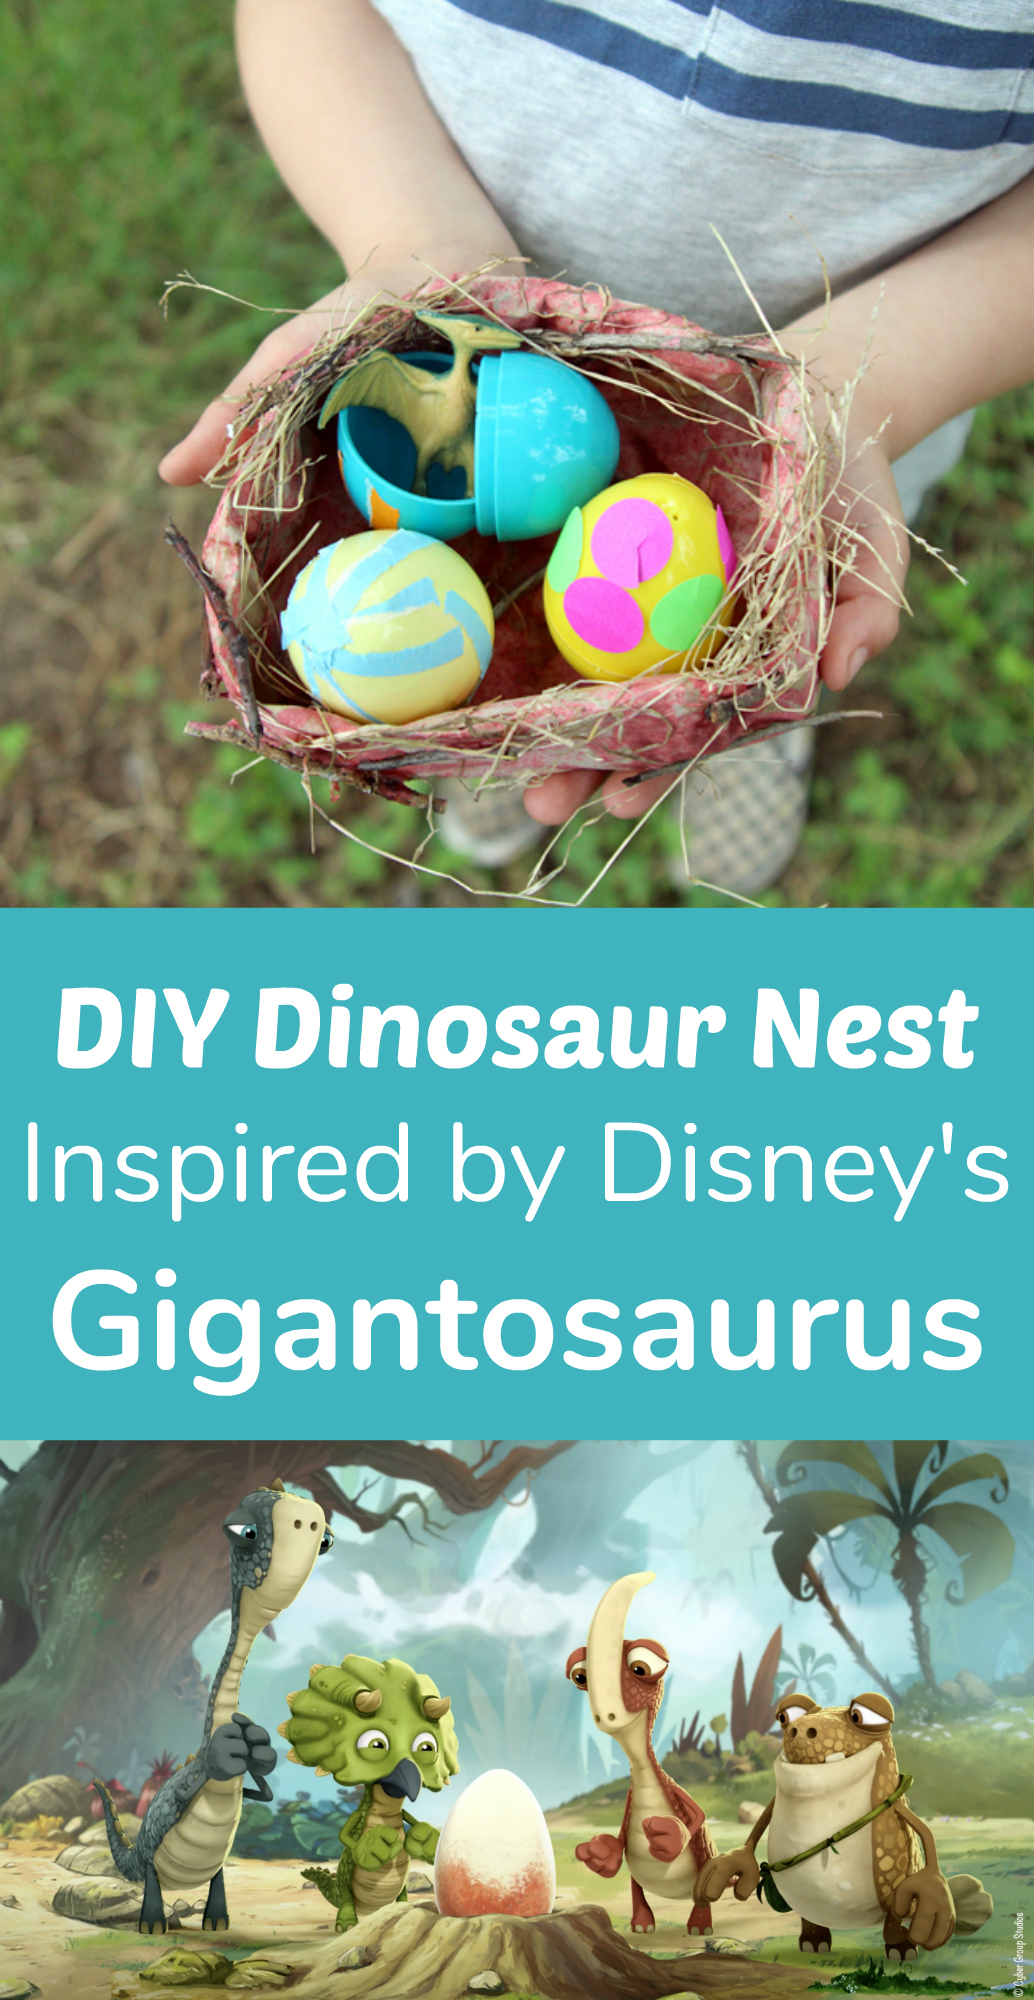 DIY Dinosaur Nest Inspired by Disney's Gigantosaurus